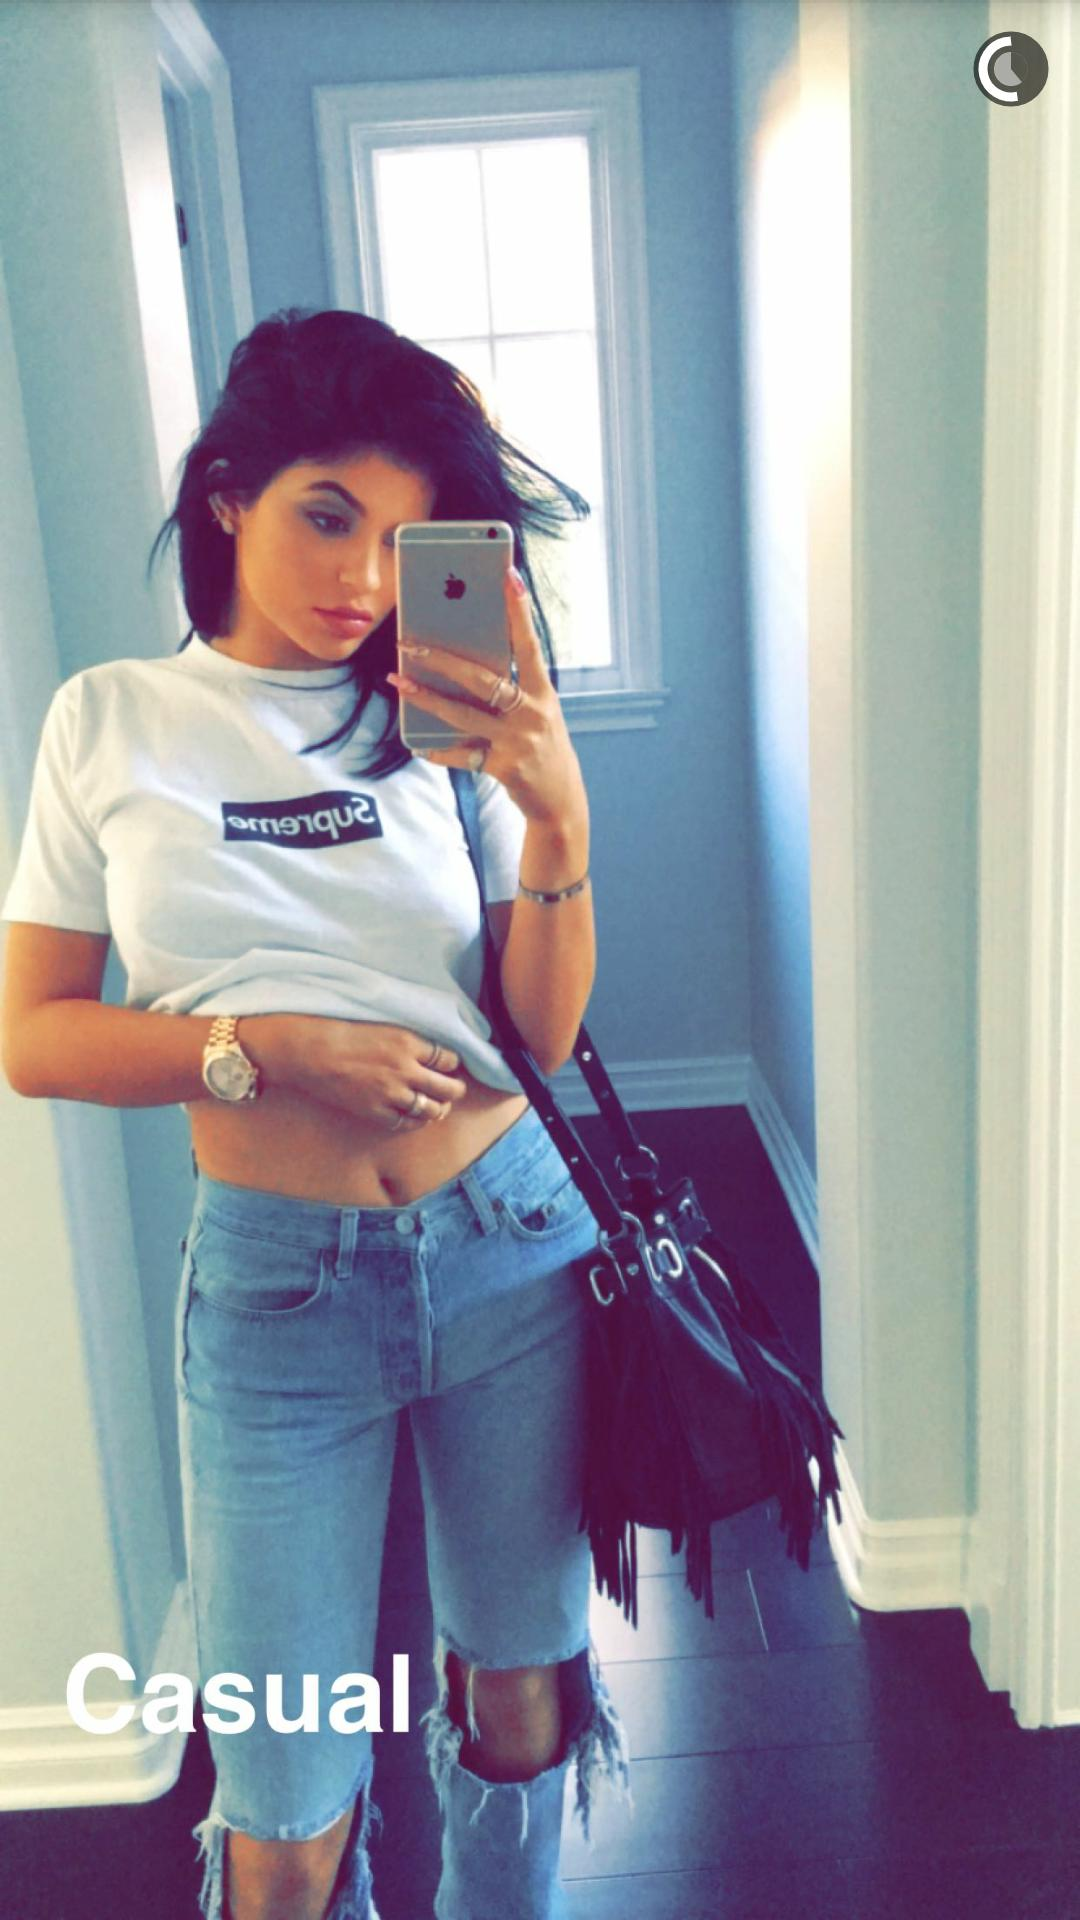 Kylie Jenner Iphone Wallpapers Top Free Kylie Jenner Iphone